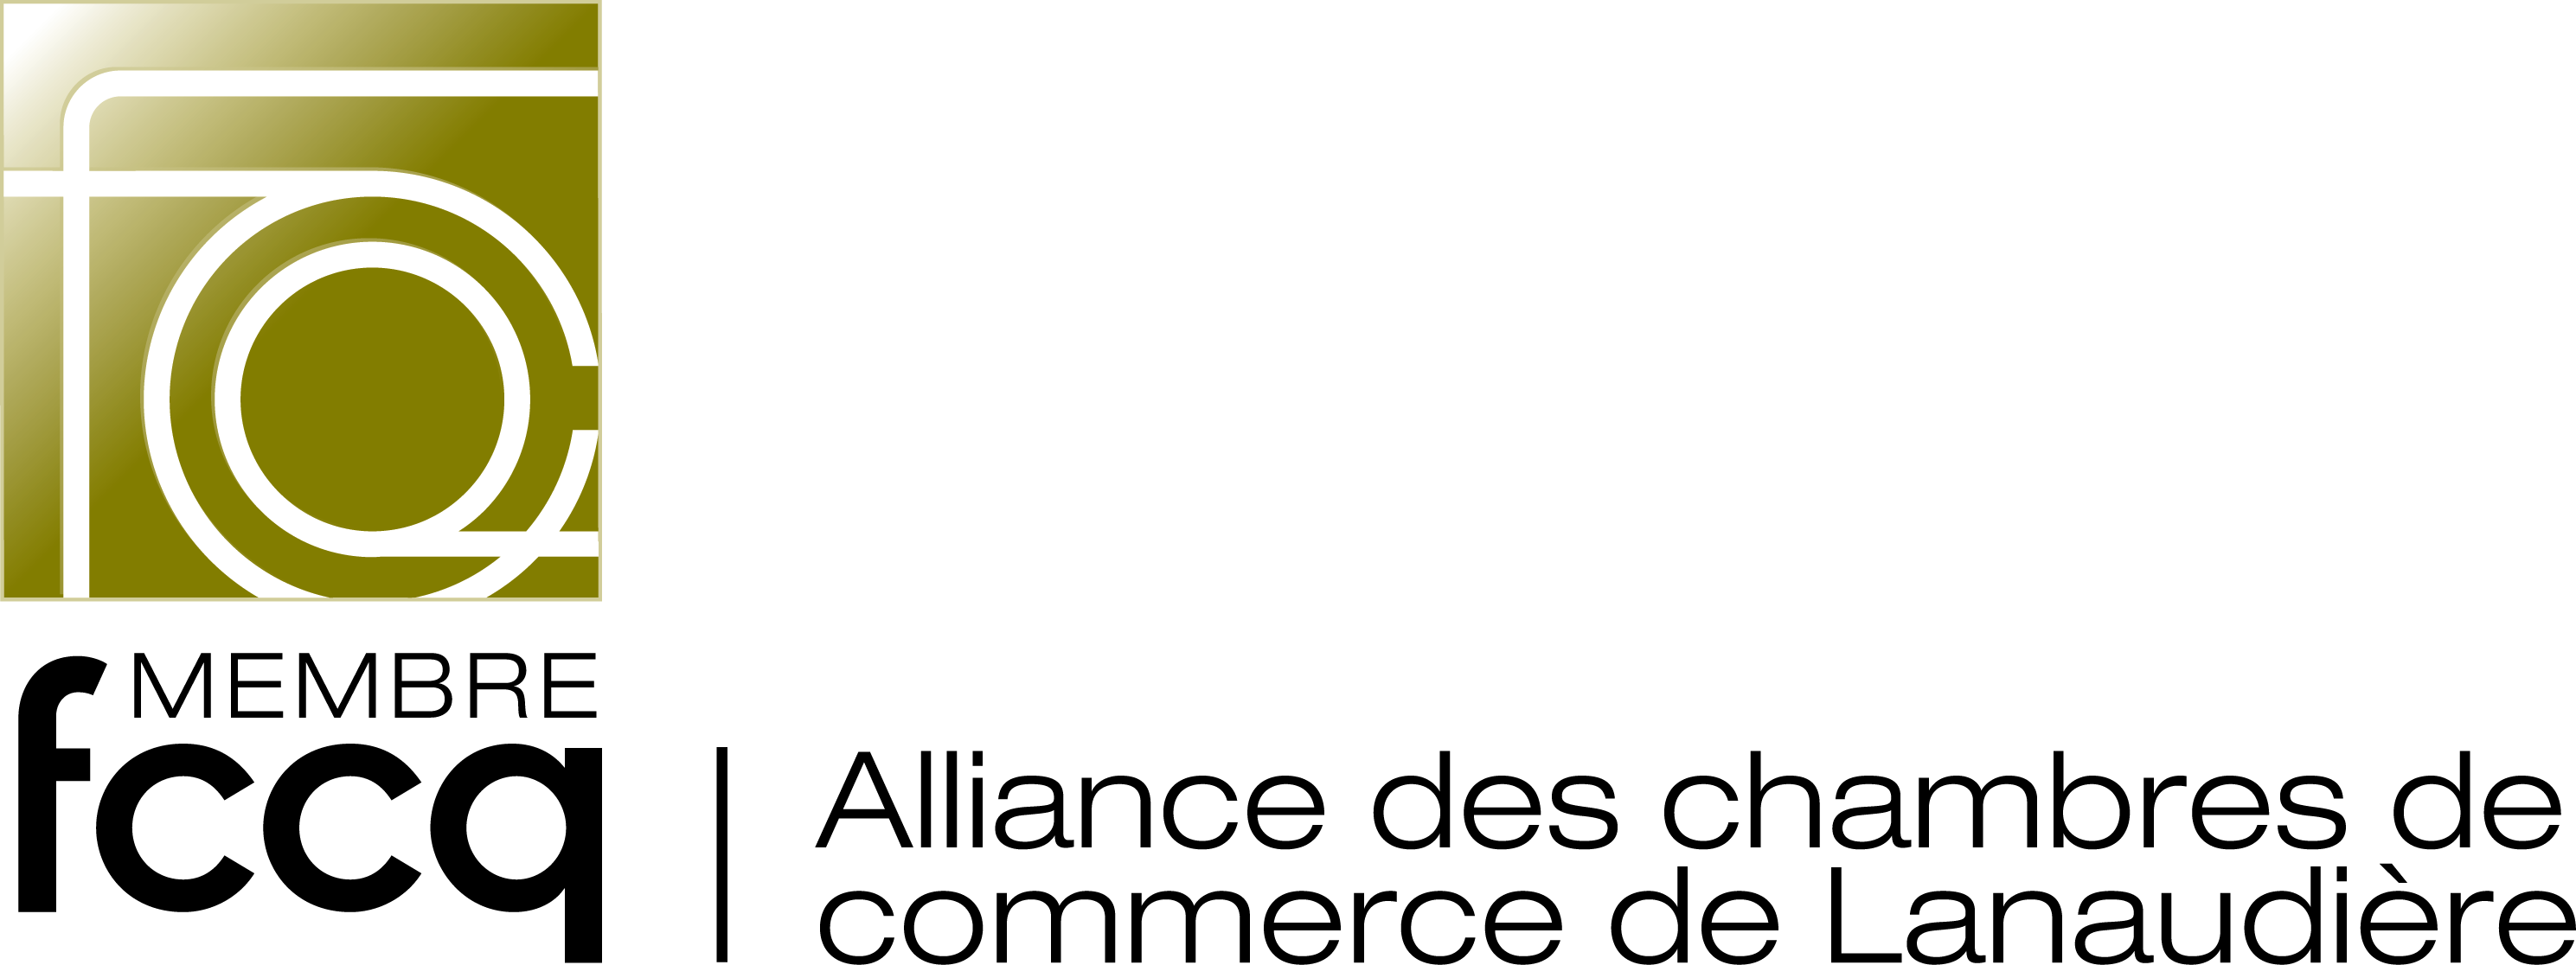 Alliance des chambres de commerce de lanaudi re chambre for Chambre de commerce de l outaouais